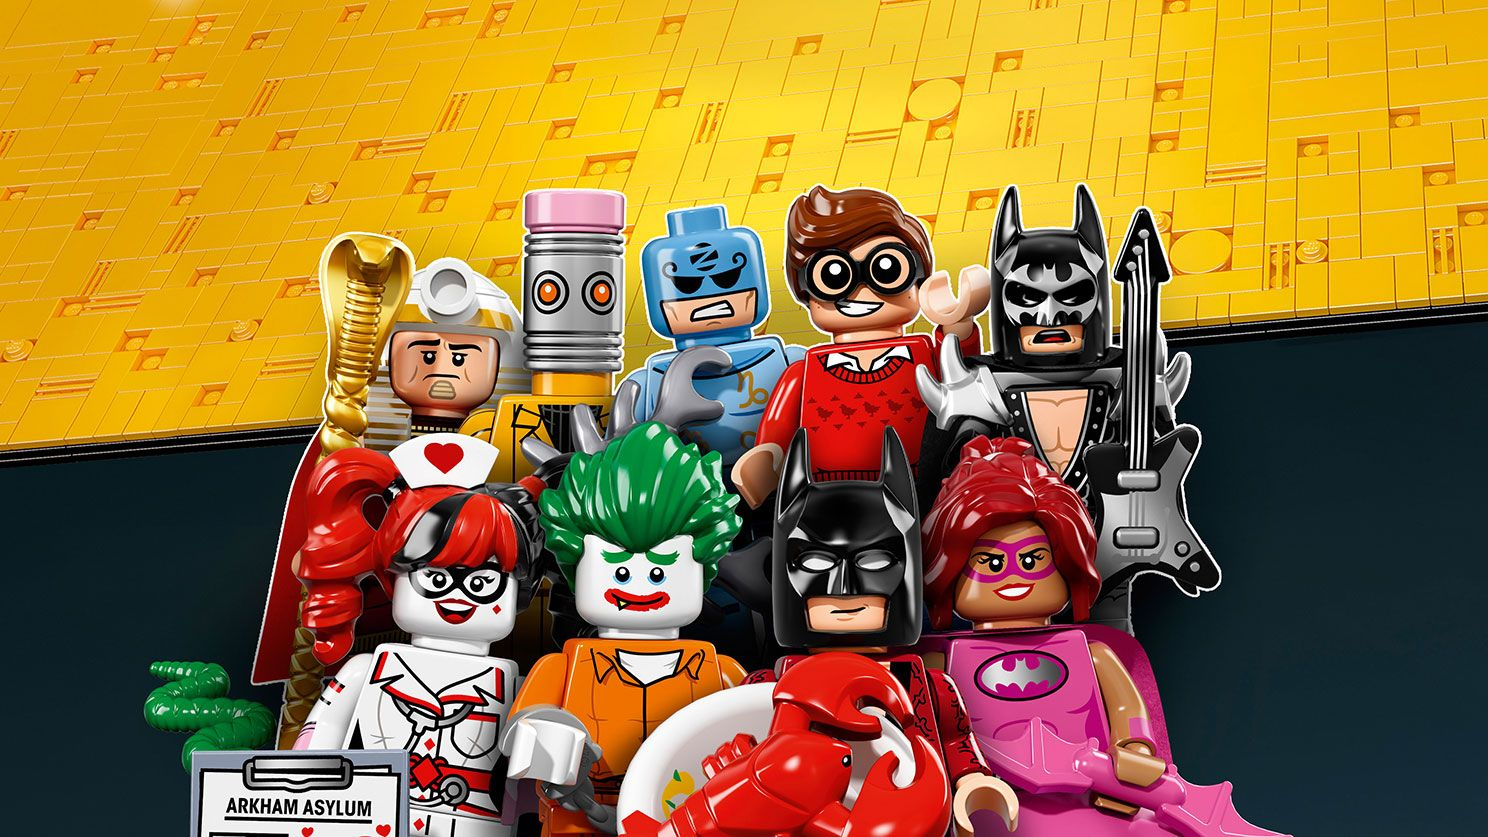 Lego Batman Movie Easter Eggs Villains Heroes And More Collider